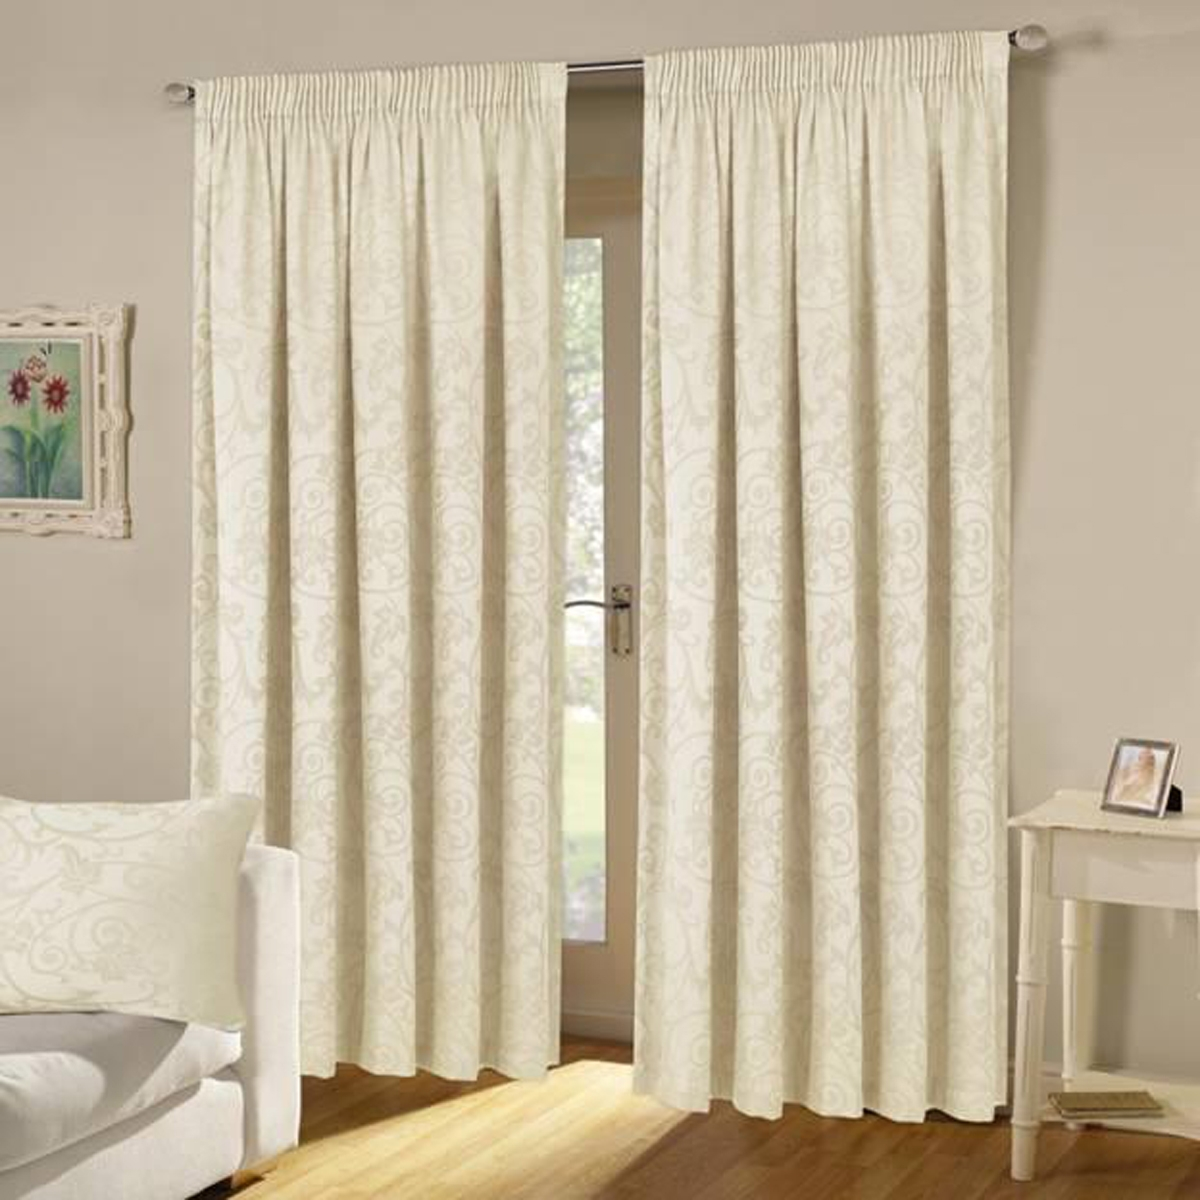 Cream Curtains Winda 7 Furniture With Lined Cream Curtains (Image 3 of 15)